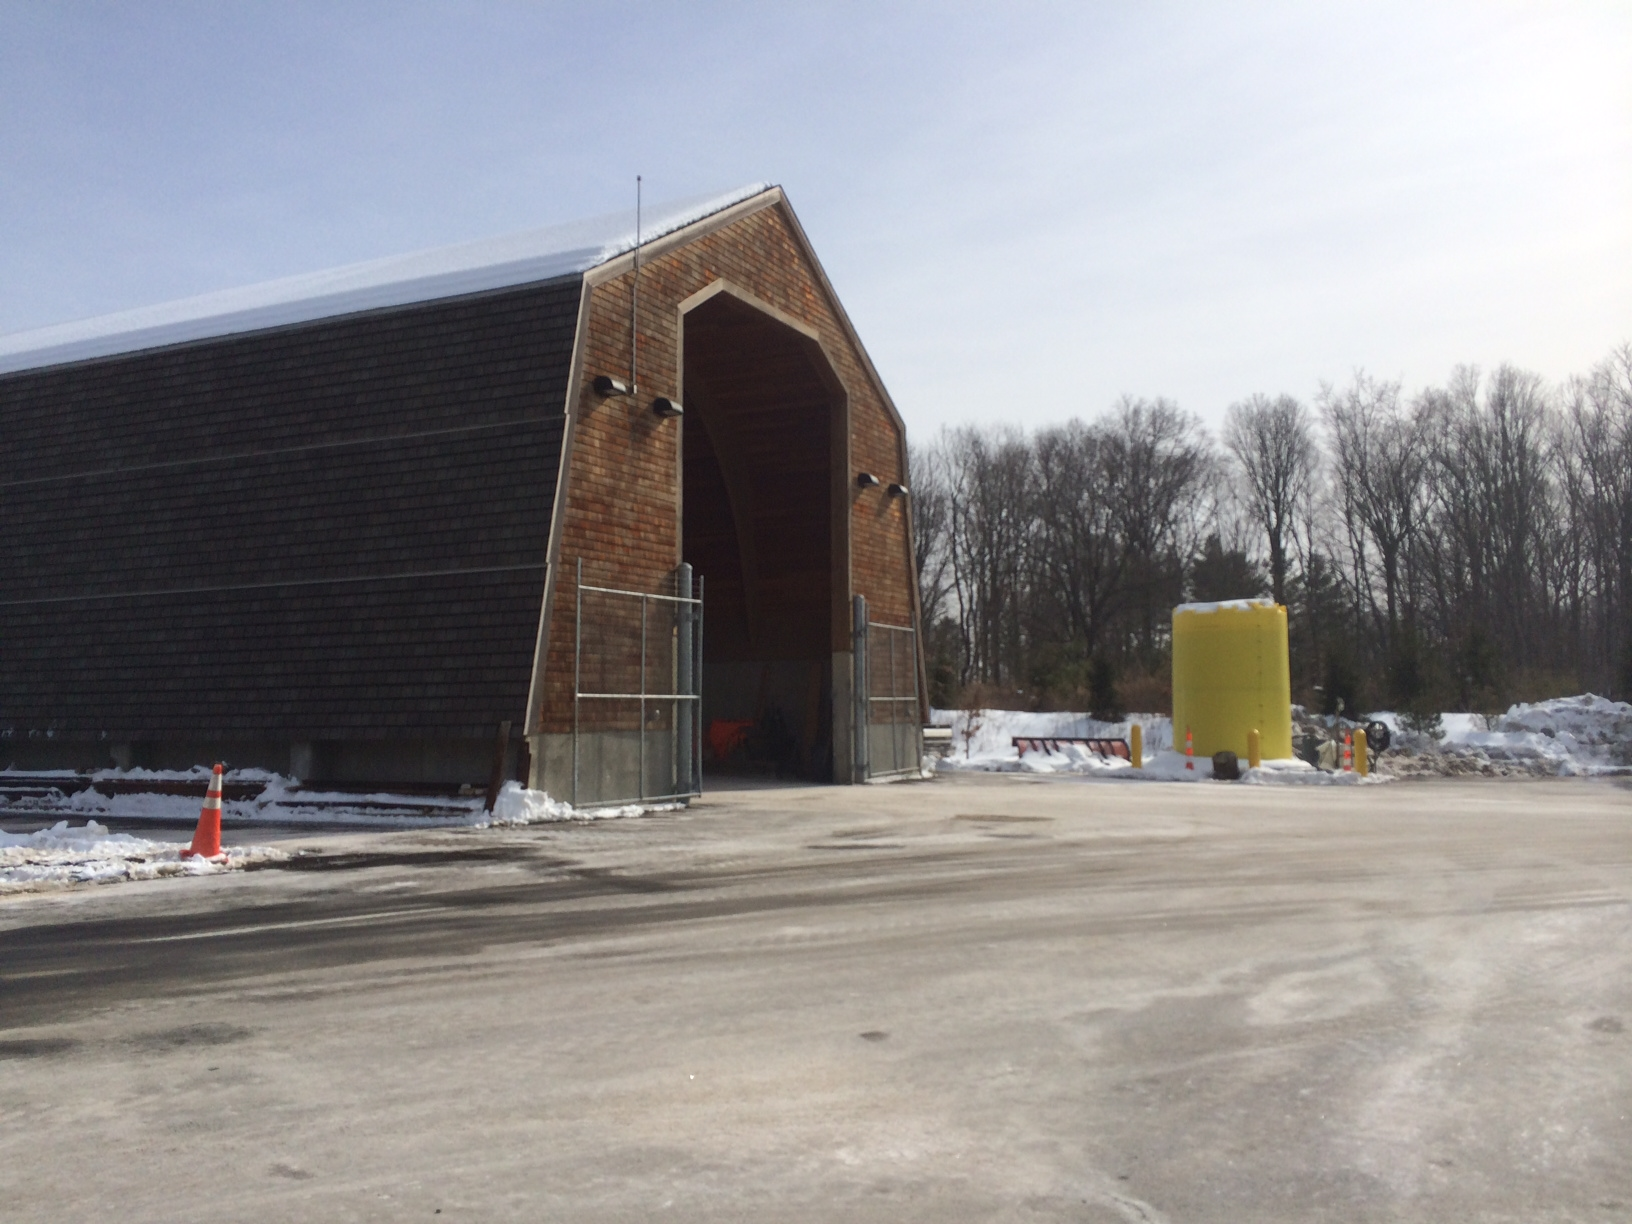 New Canaan Highway Department salt shed, off of South Avenue by the Merritt Parkway. Credit: Michael Dinan